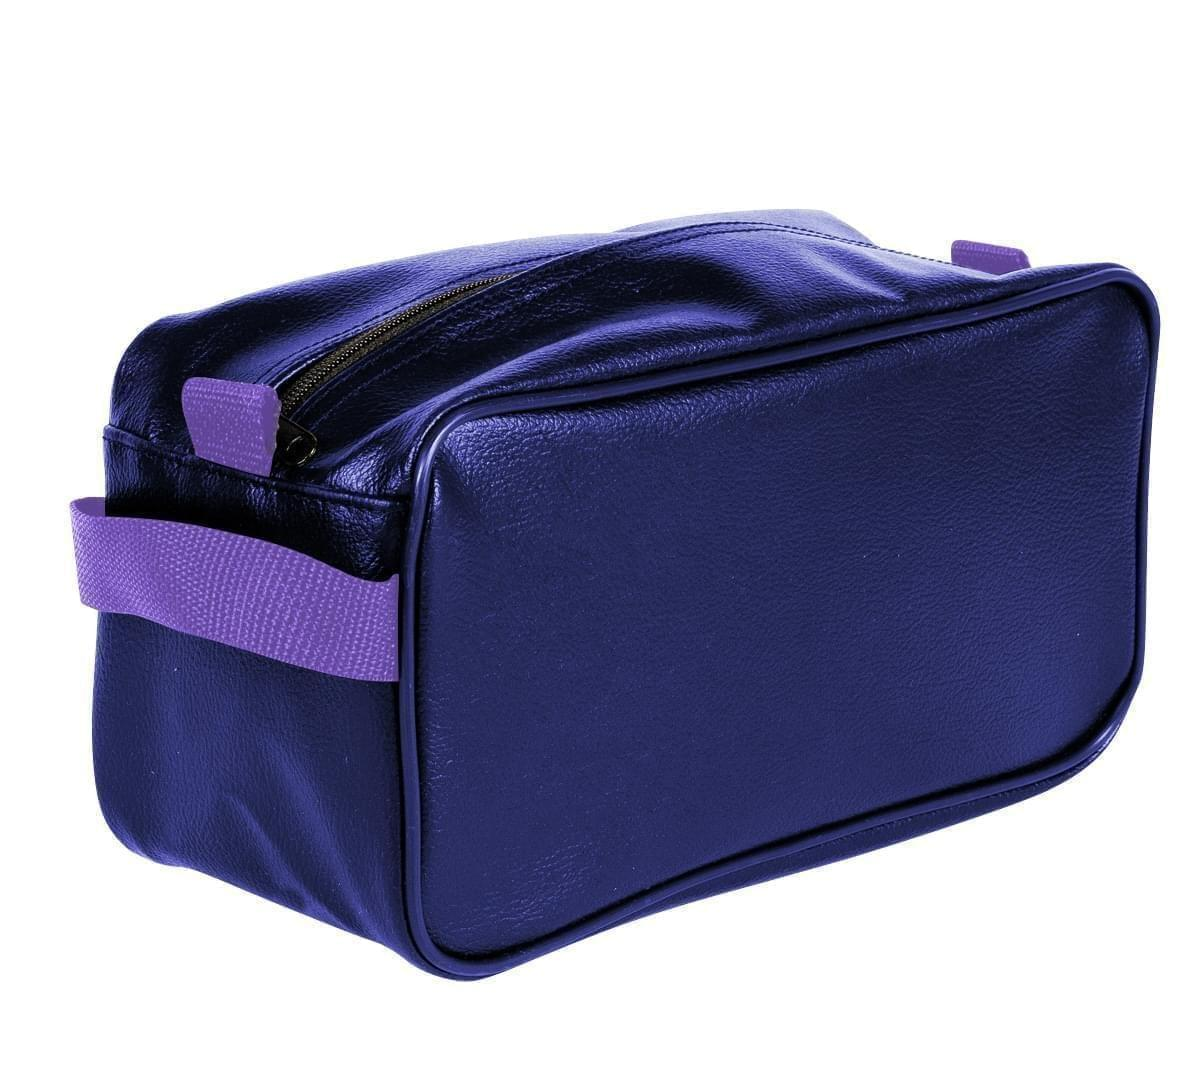 USA Made Cosmetic & Toiletry Cases, Purple-Purple, 3000996-AY1